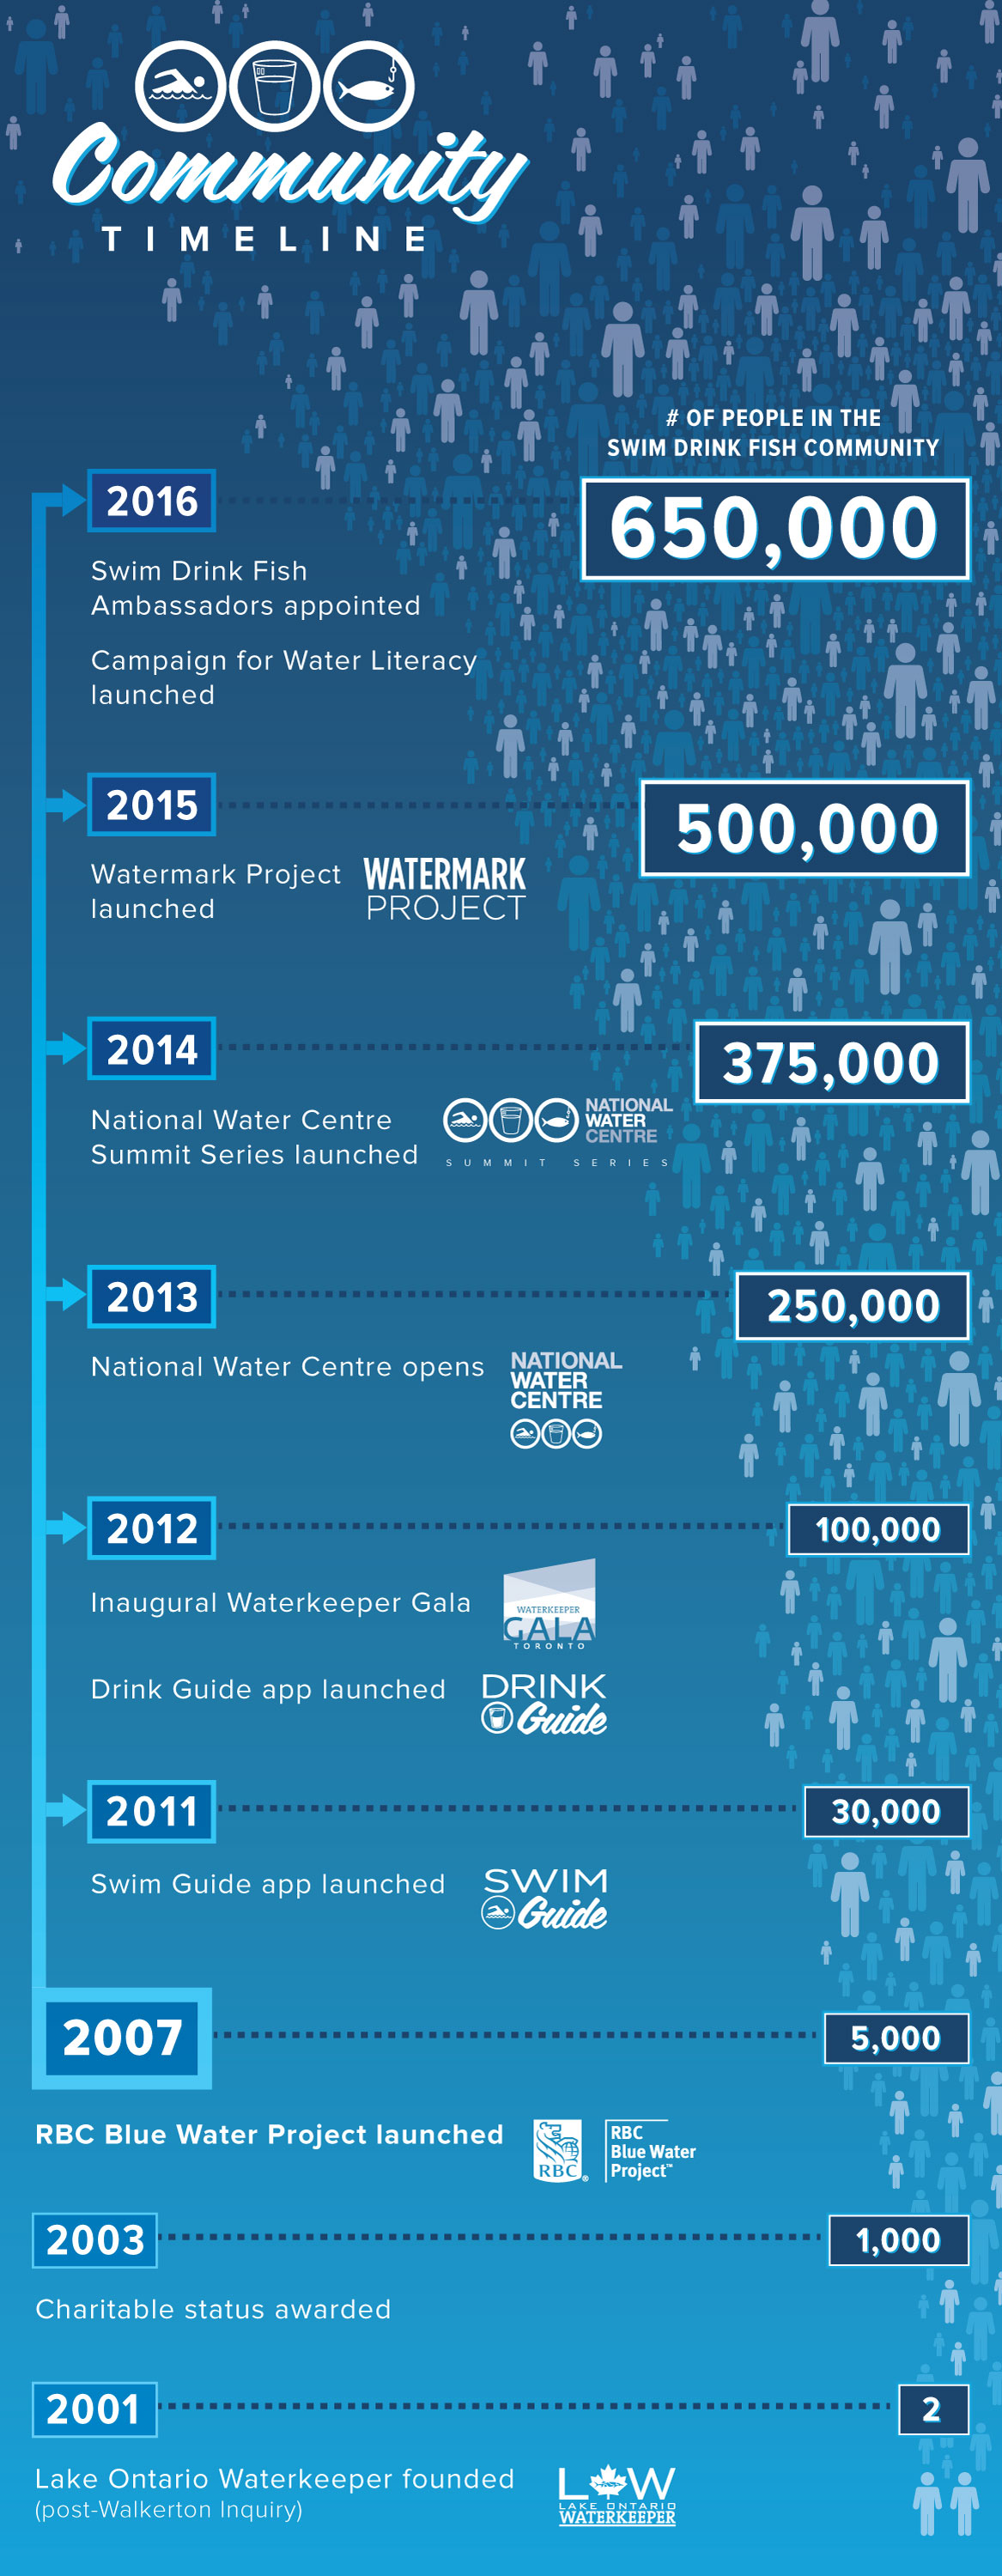 TImeline showing the RBC Blue Water Project's incredible contribution to growing the Swim Drink Fish Community. (Image via Lake Ontario Waterkeeper)